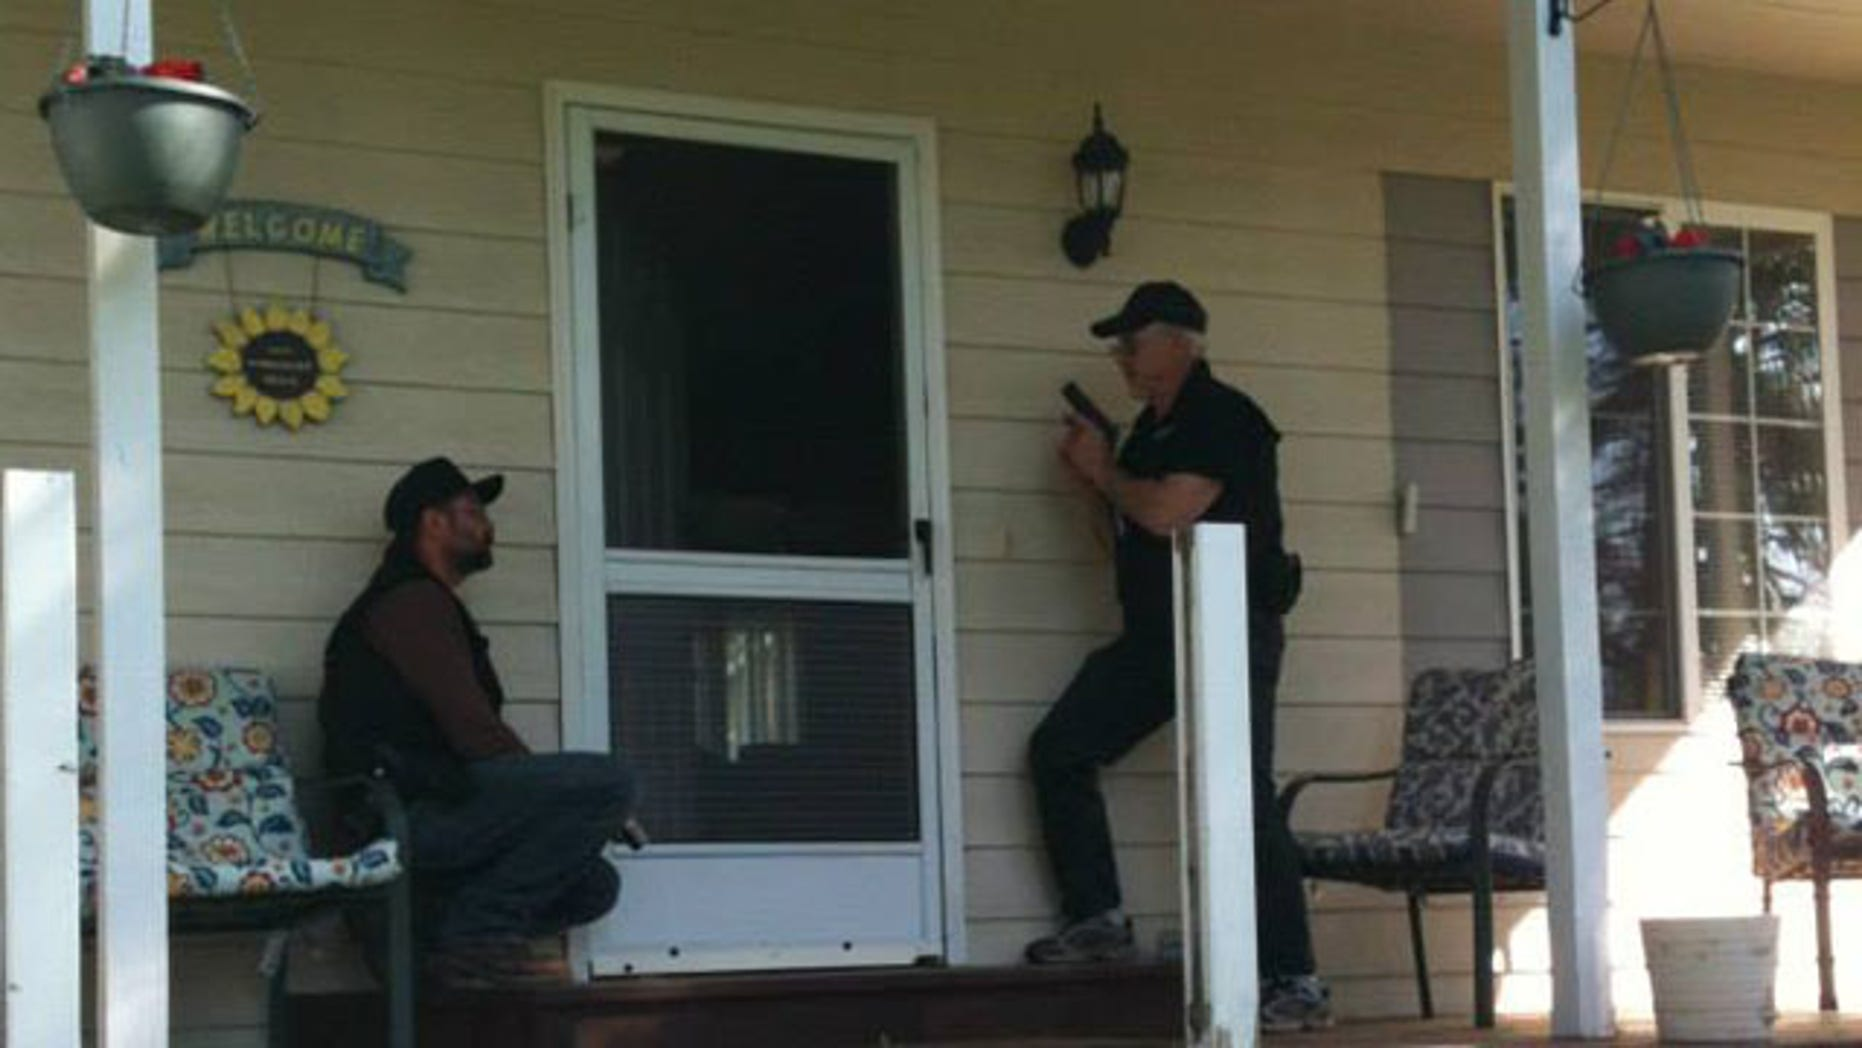 North Valley Community watch members prepare to check on a home.